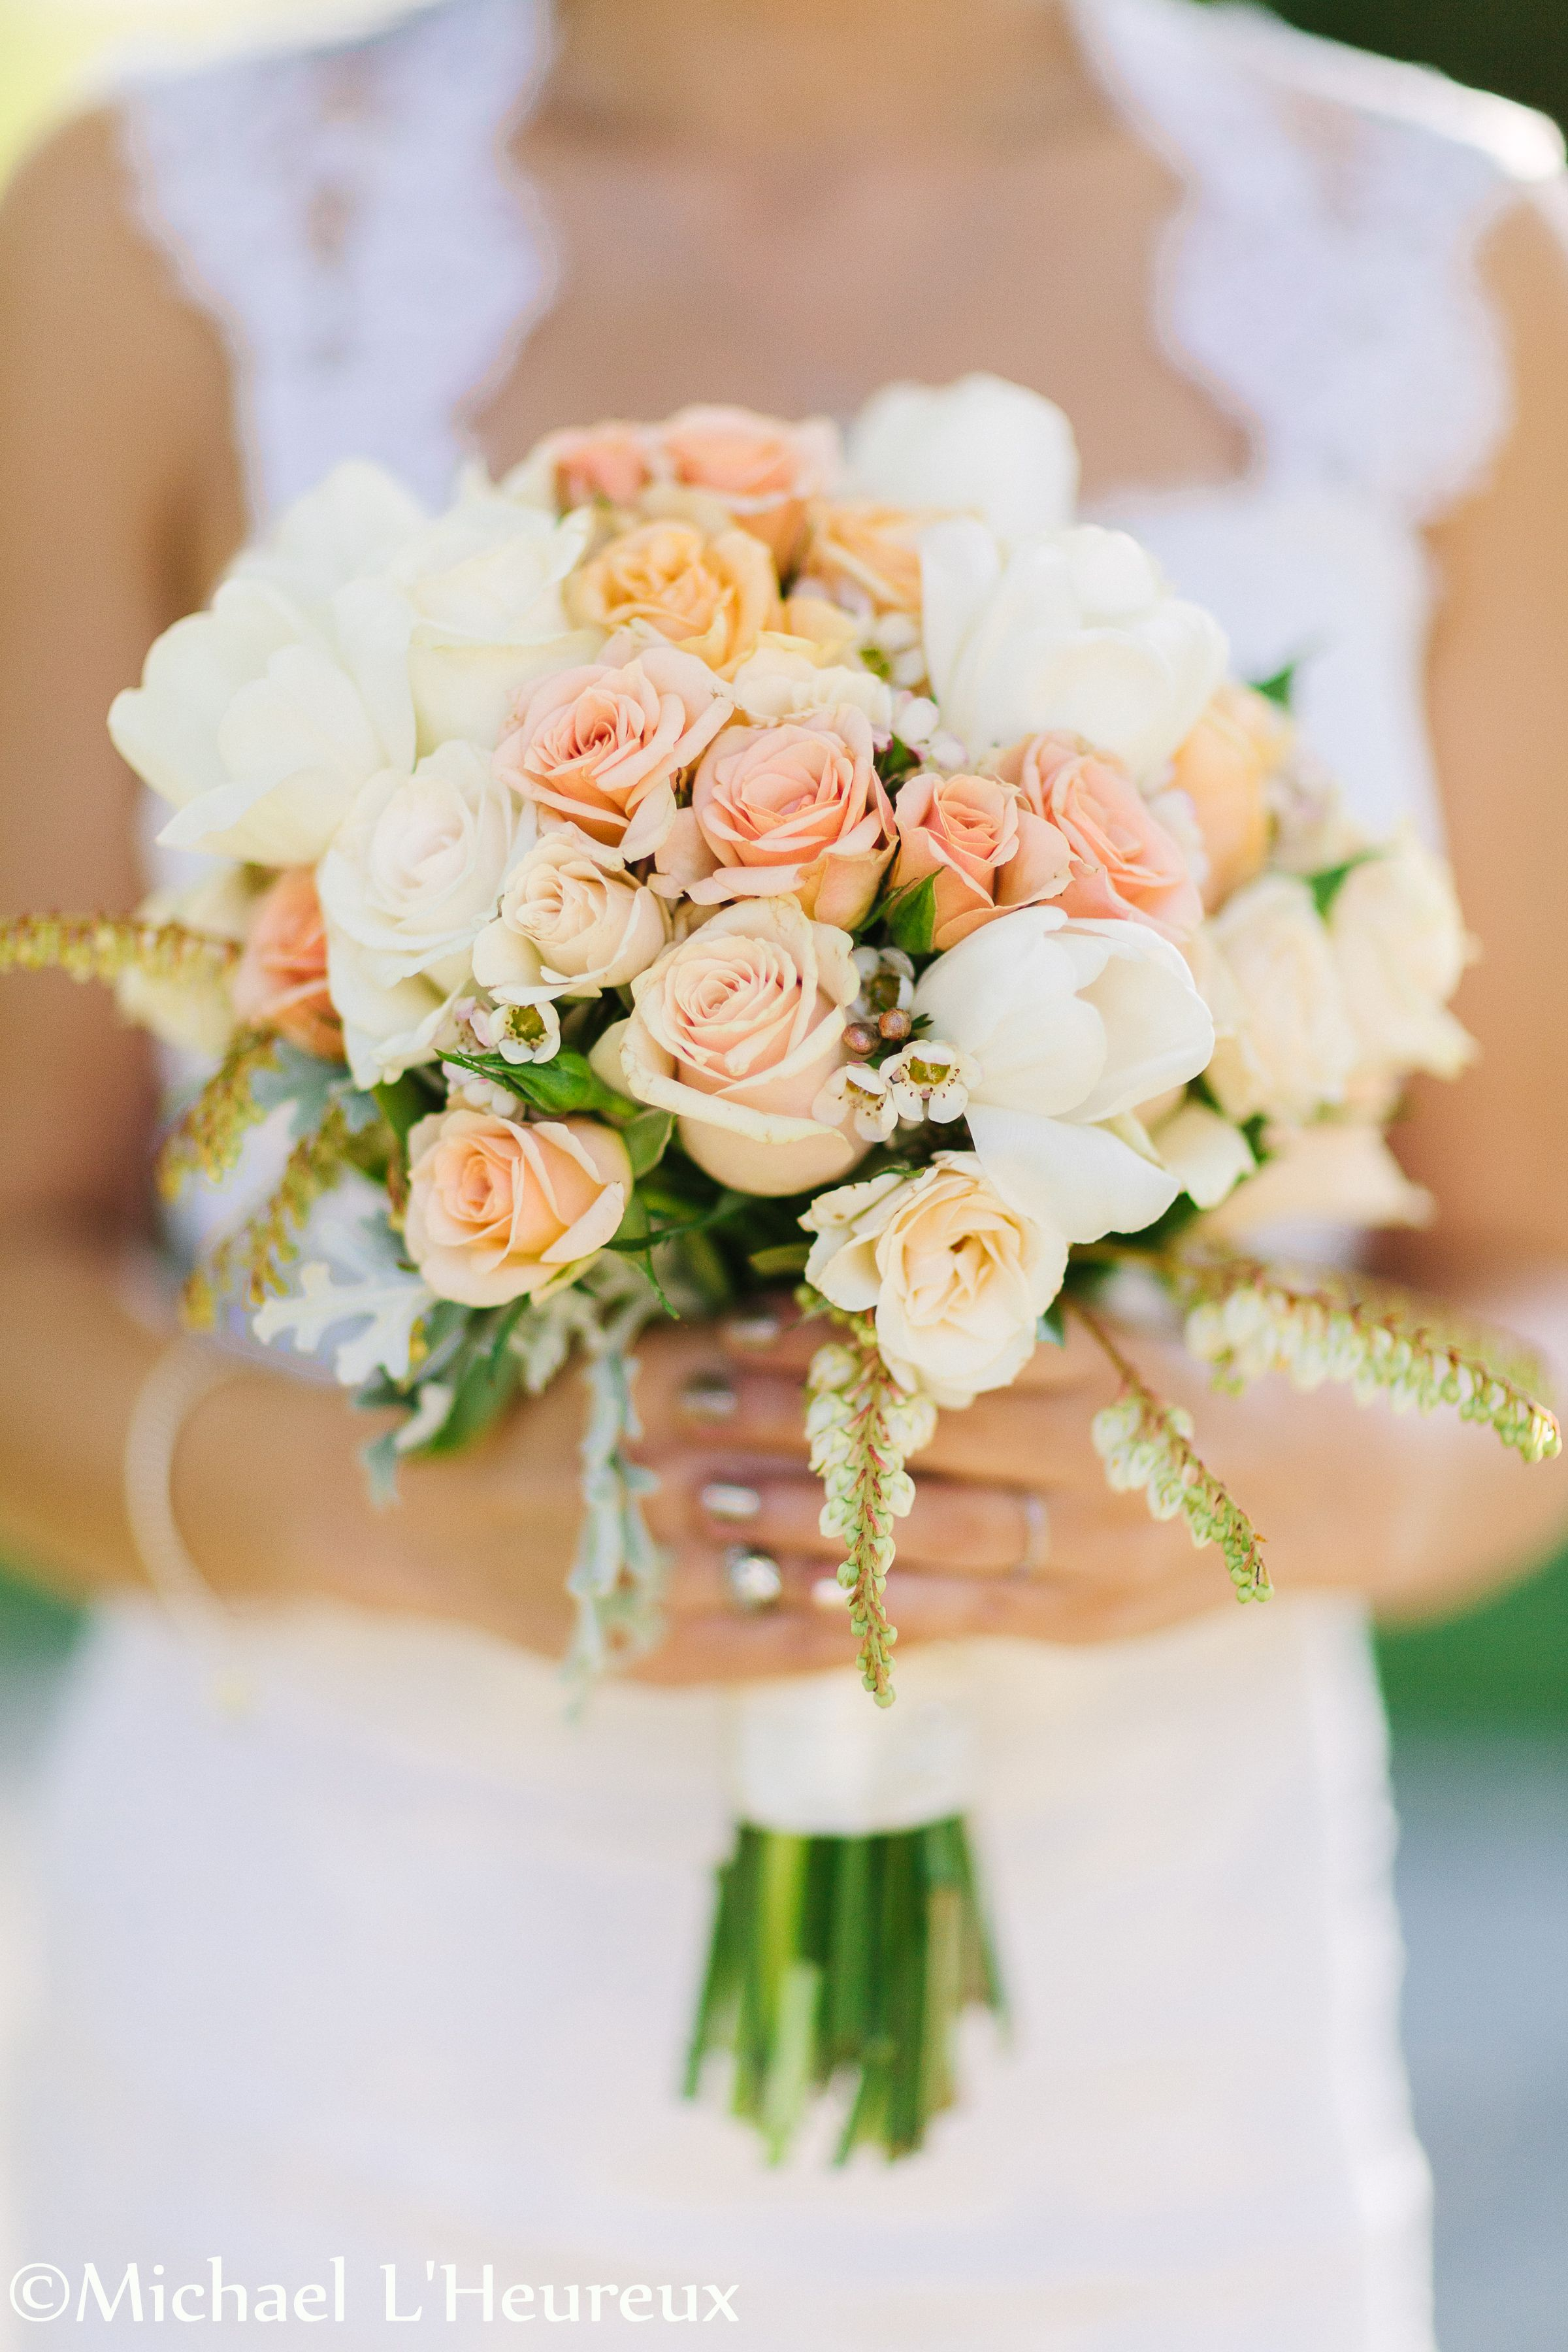 Peach And Creams Hand Tied Bridal Bouquet For Summer Wedding At Vine Hill House In Sebastopol